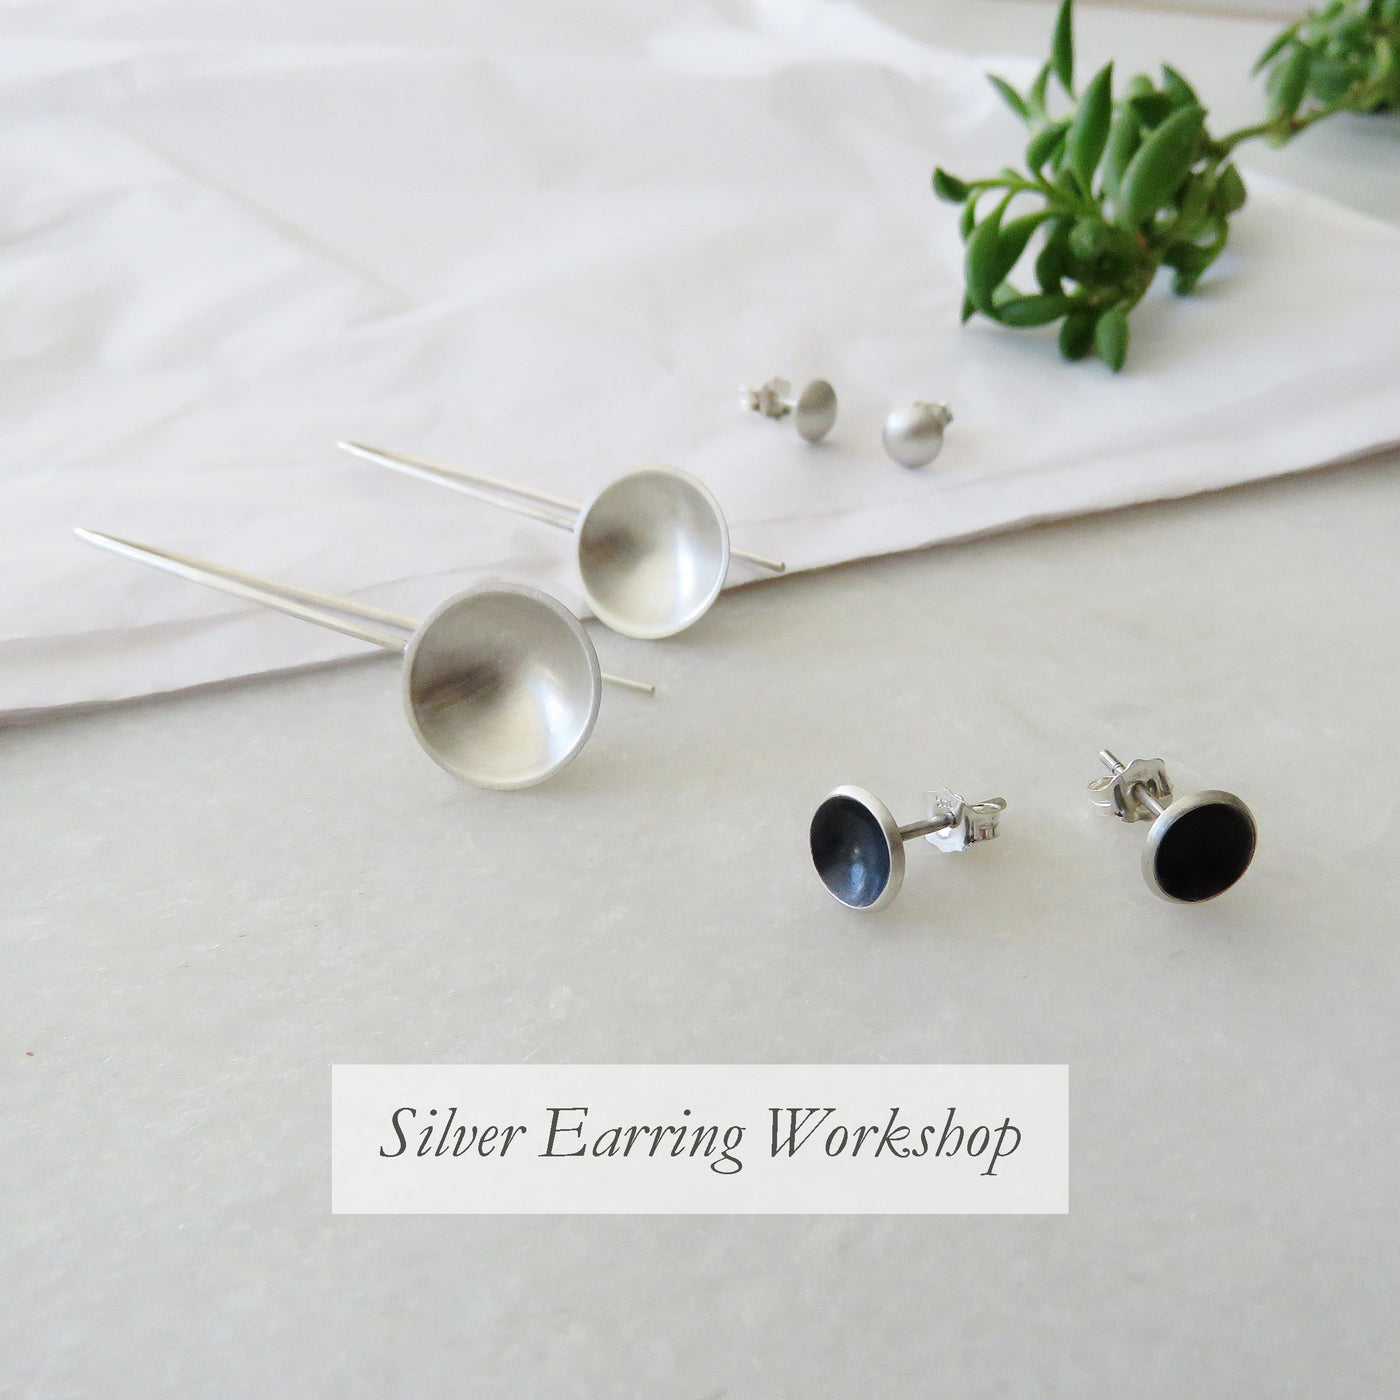 Silver Earring Workshop 25 January